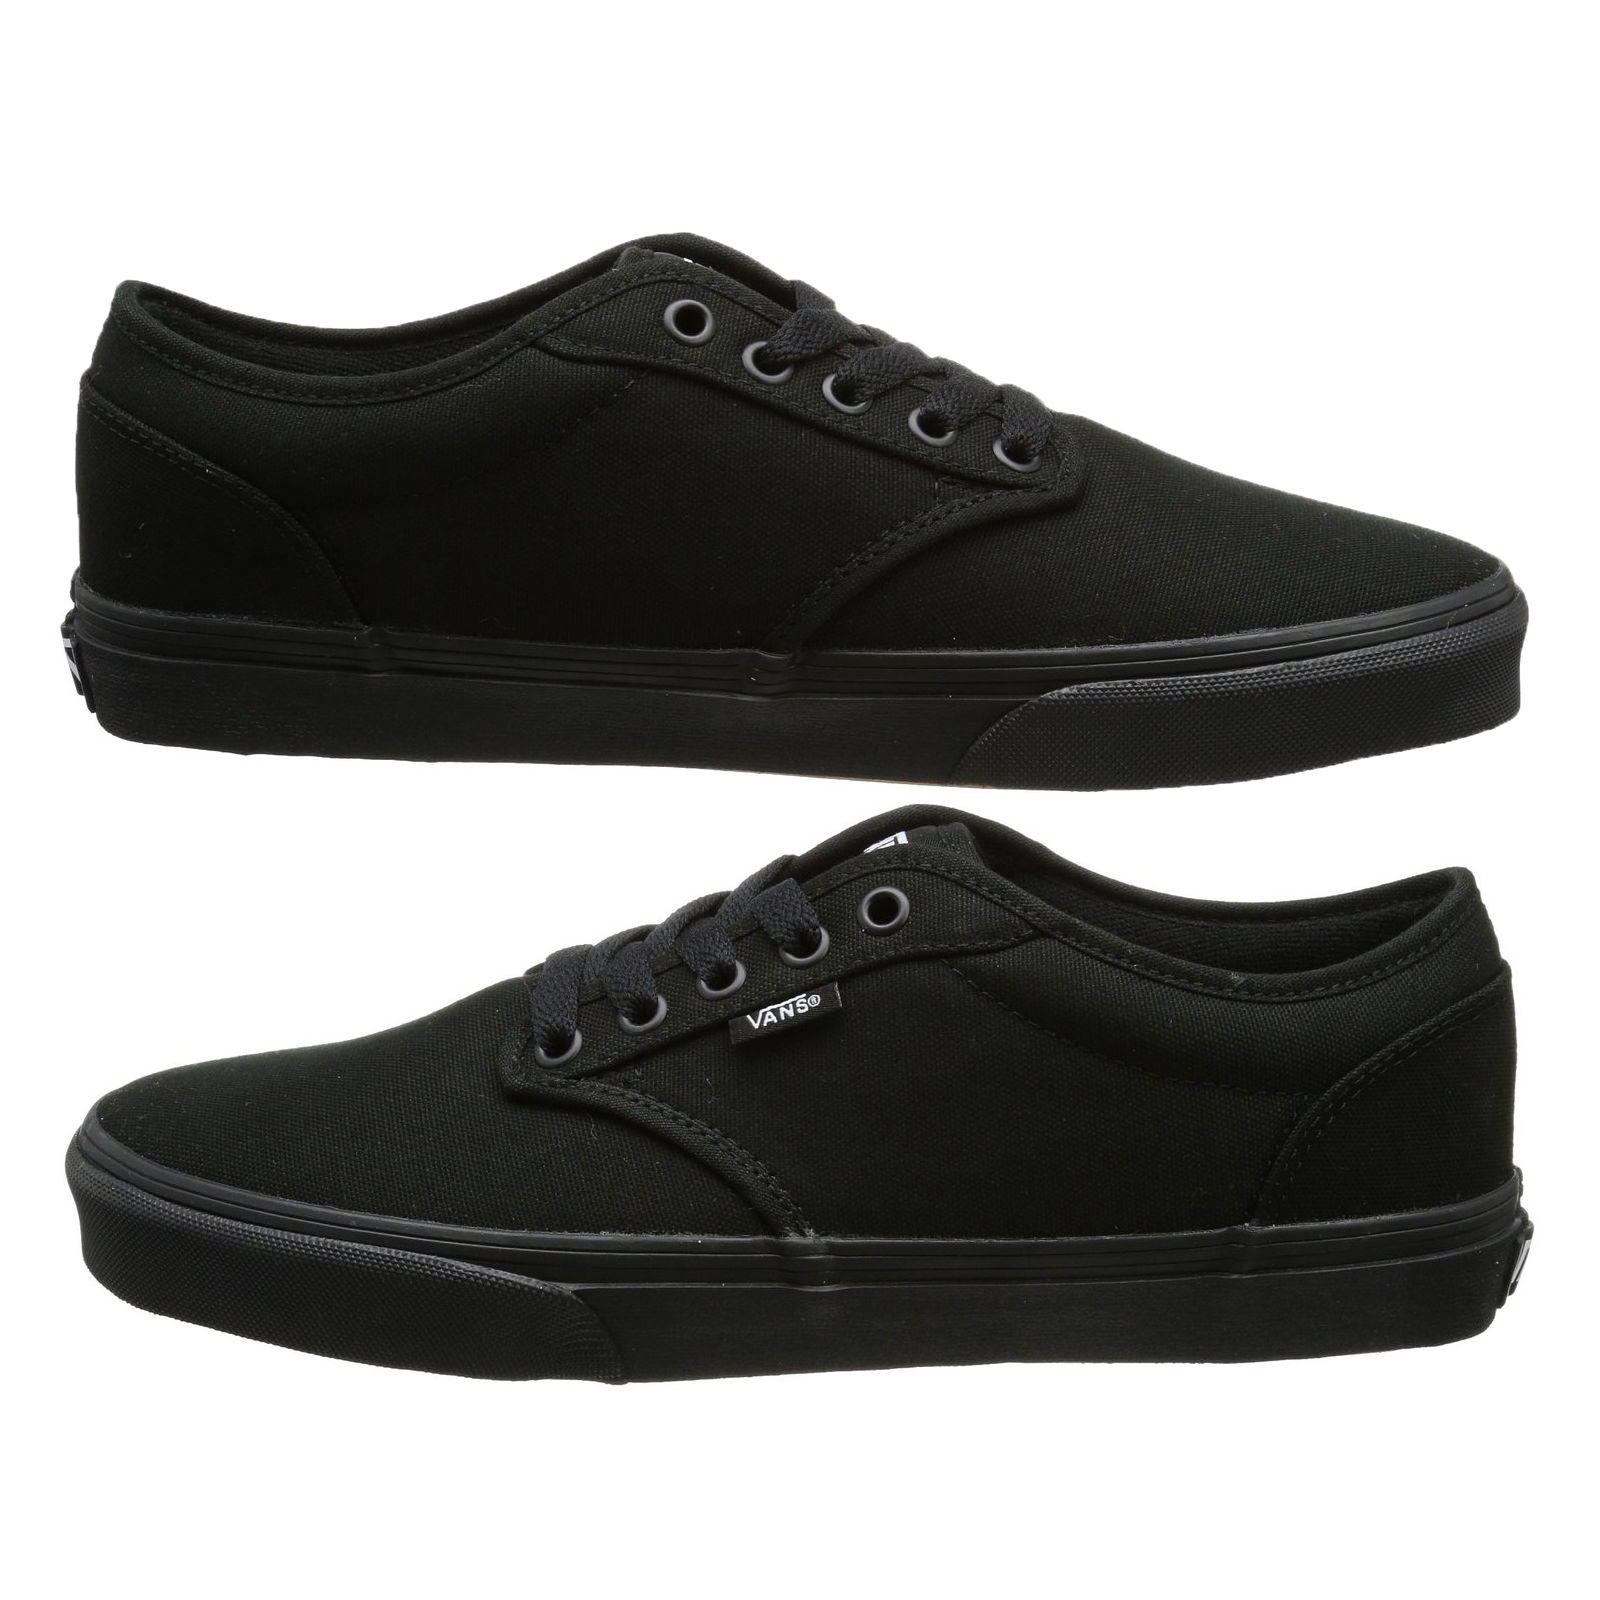 Details zu VANS Atwood Mens Canvas Skater Trainers Plain Shoes Lace Up Plimsolls Black